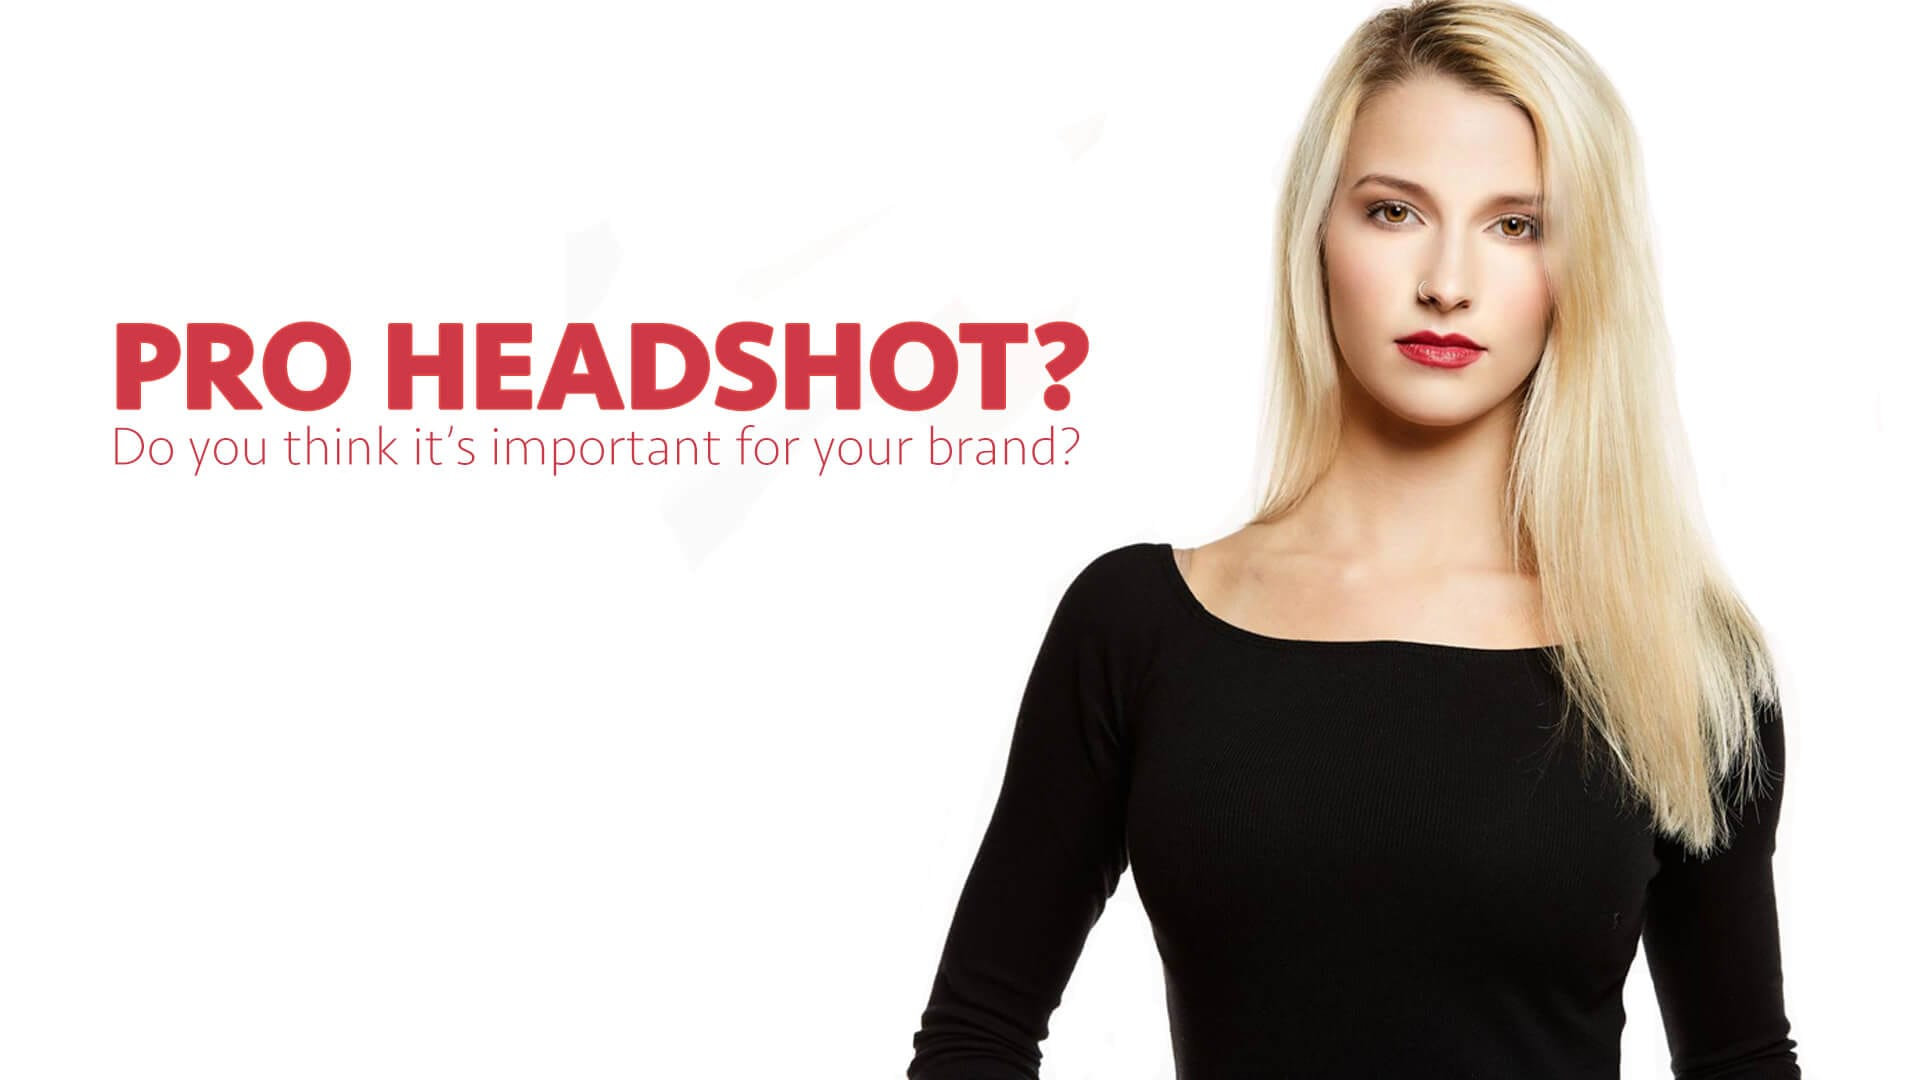 Uniform Headshot, Why? 360 Visuals - Charlotte NC